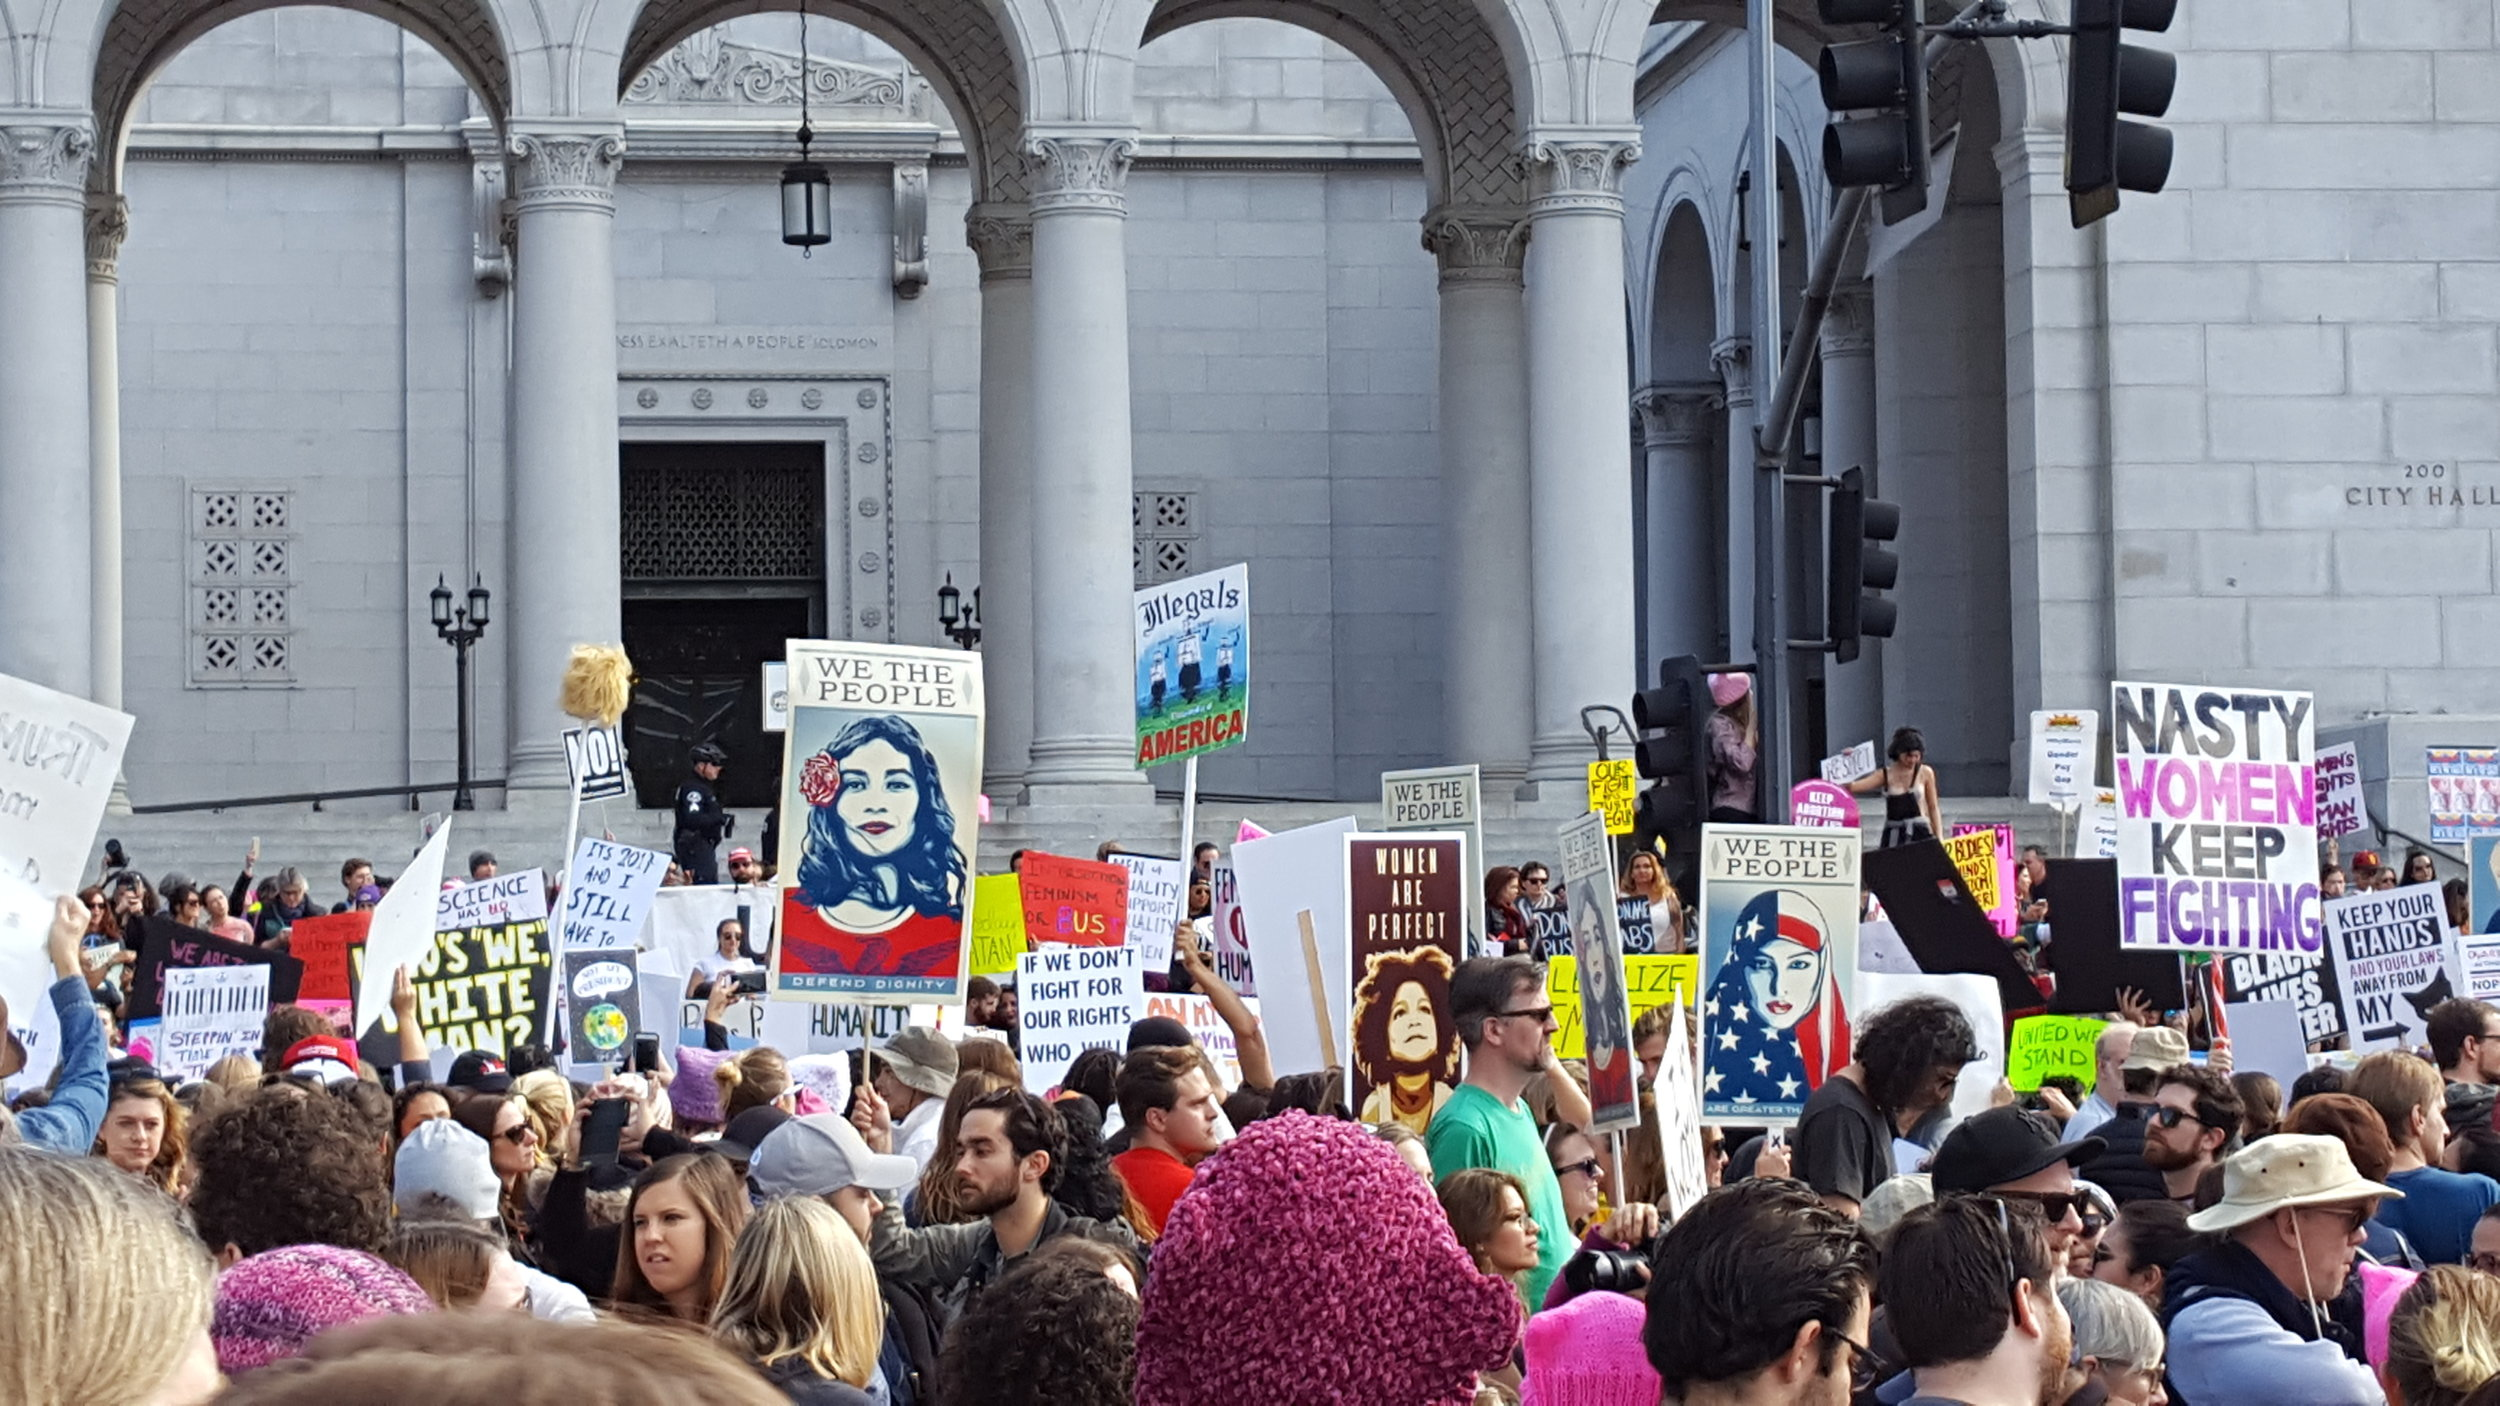 Peaceful demonstrators in front of Los Angeles City Hall on Jan. 21, 2017 (Photo by C. Rasmussen).